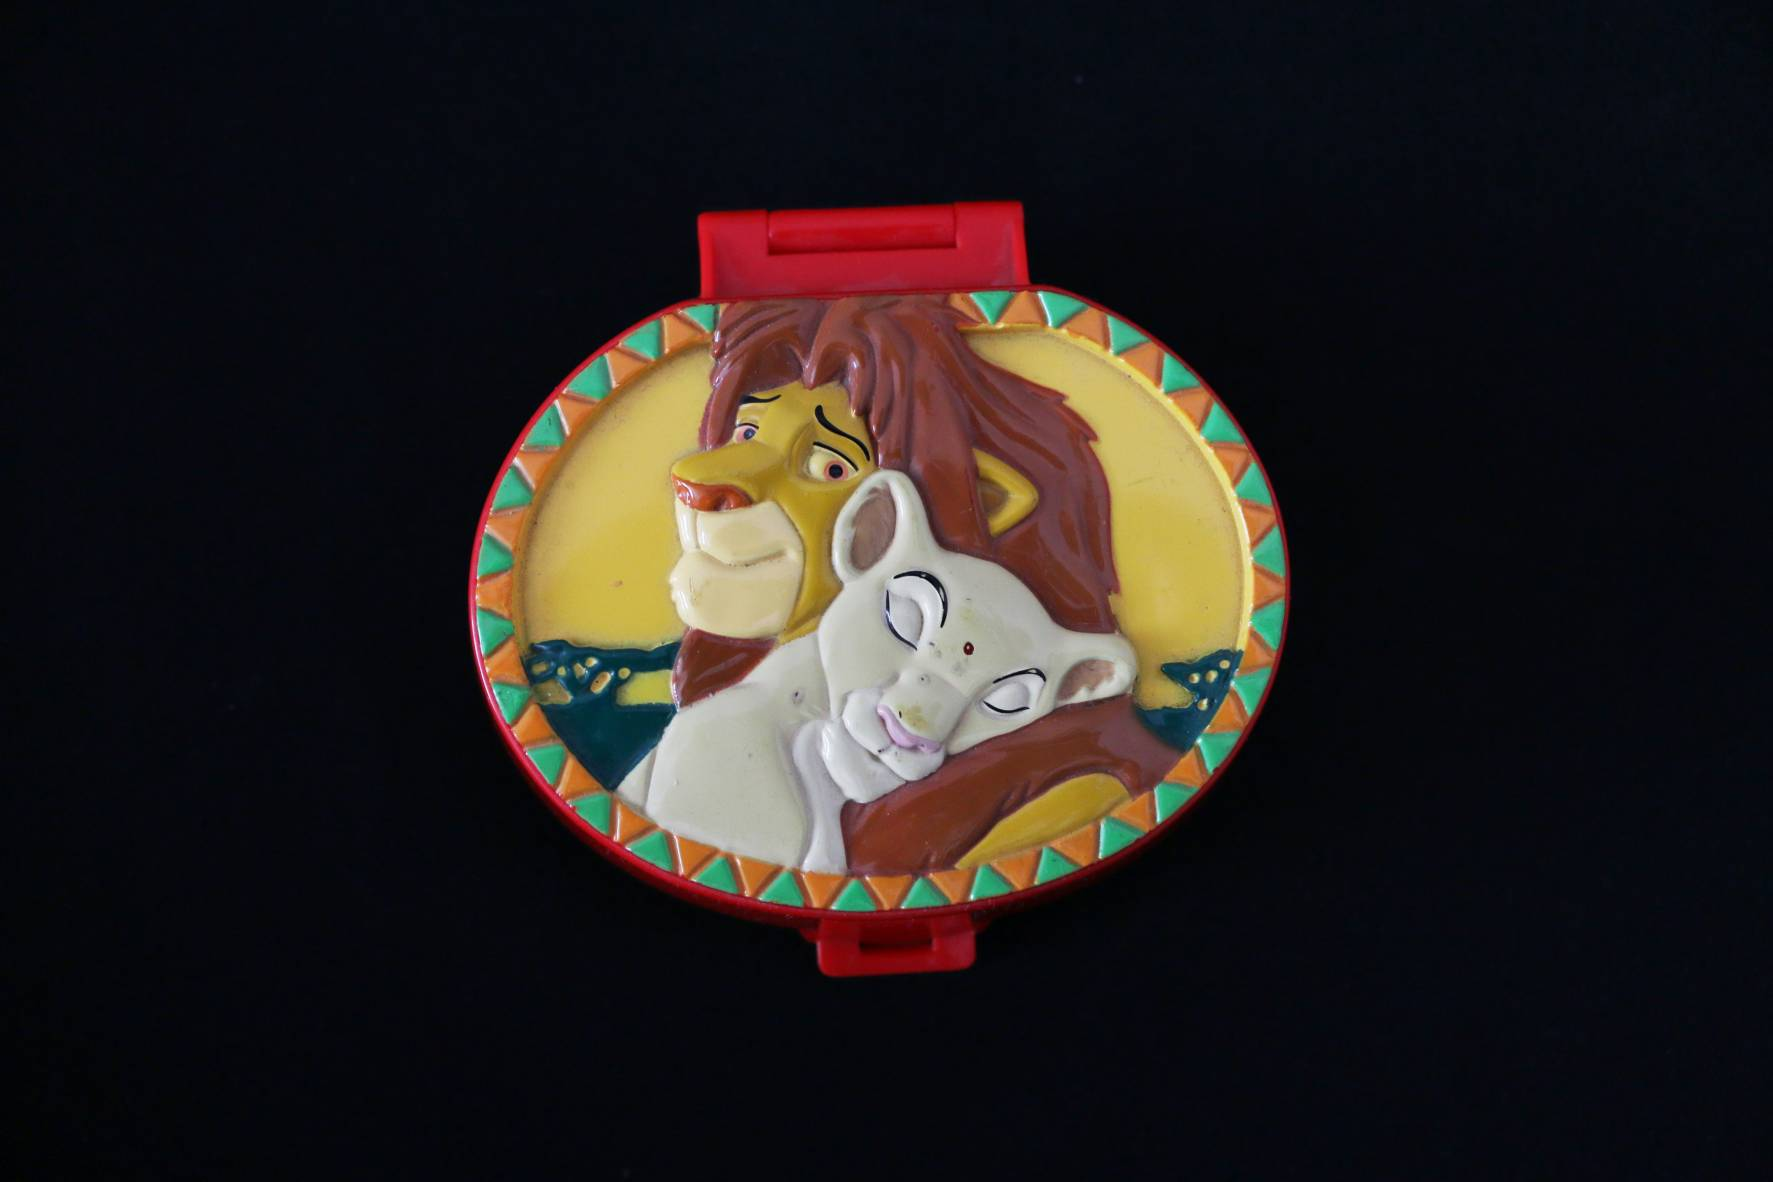 Disney 1996 The Lion king Playcase (1)